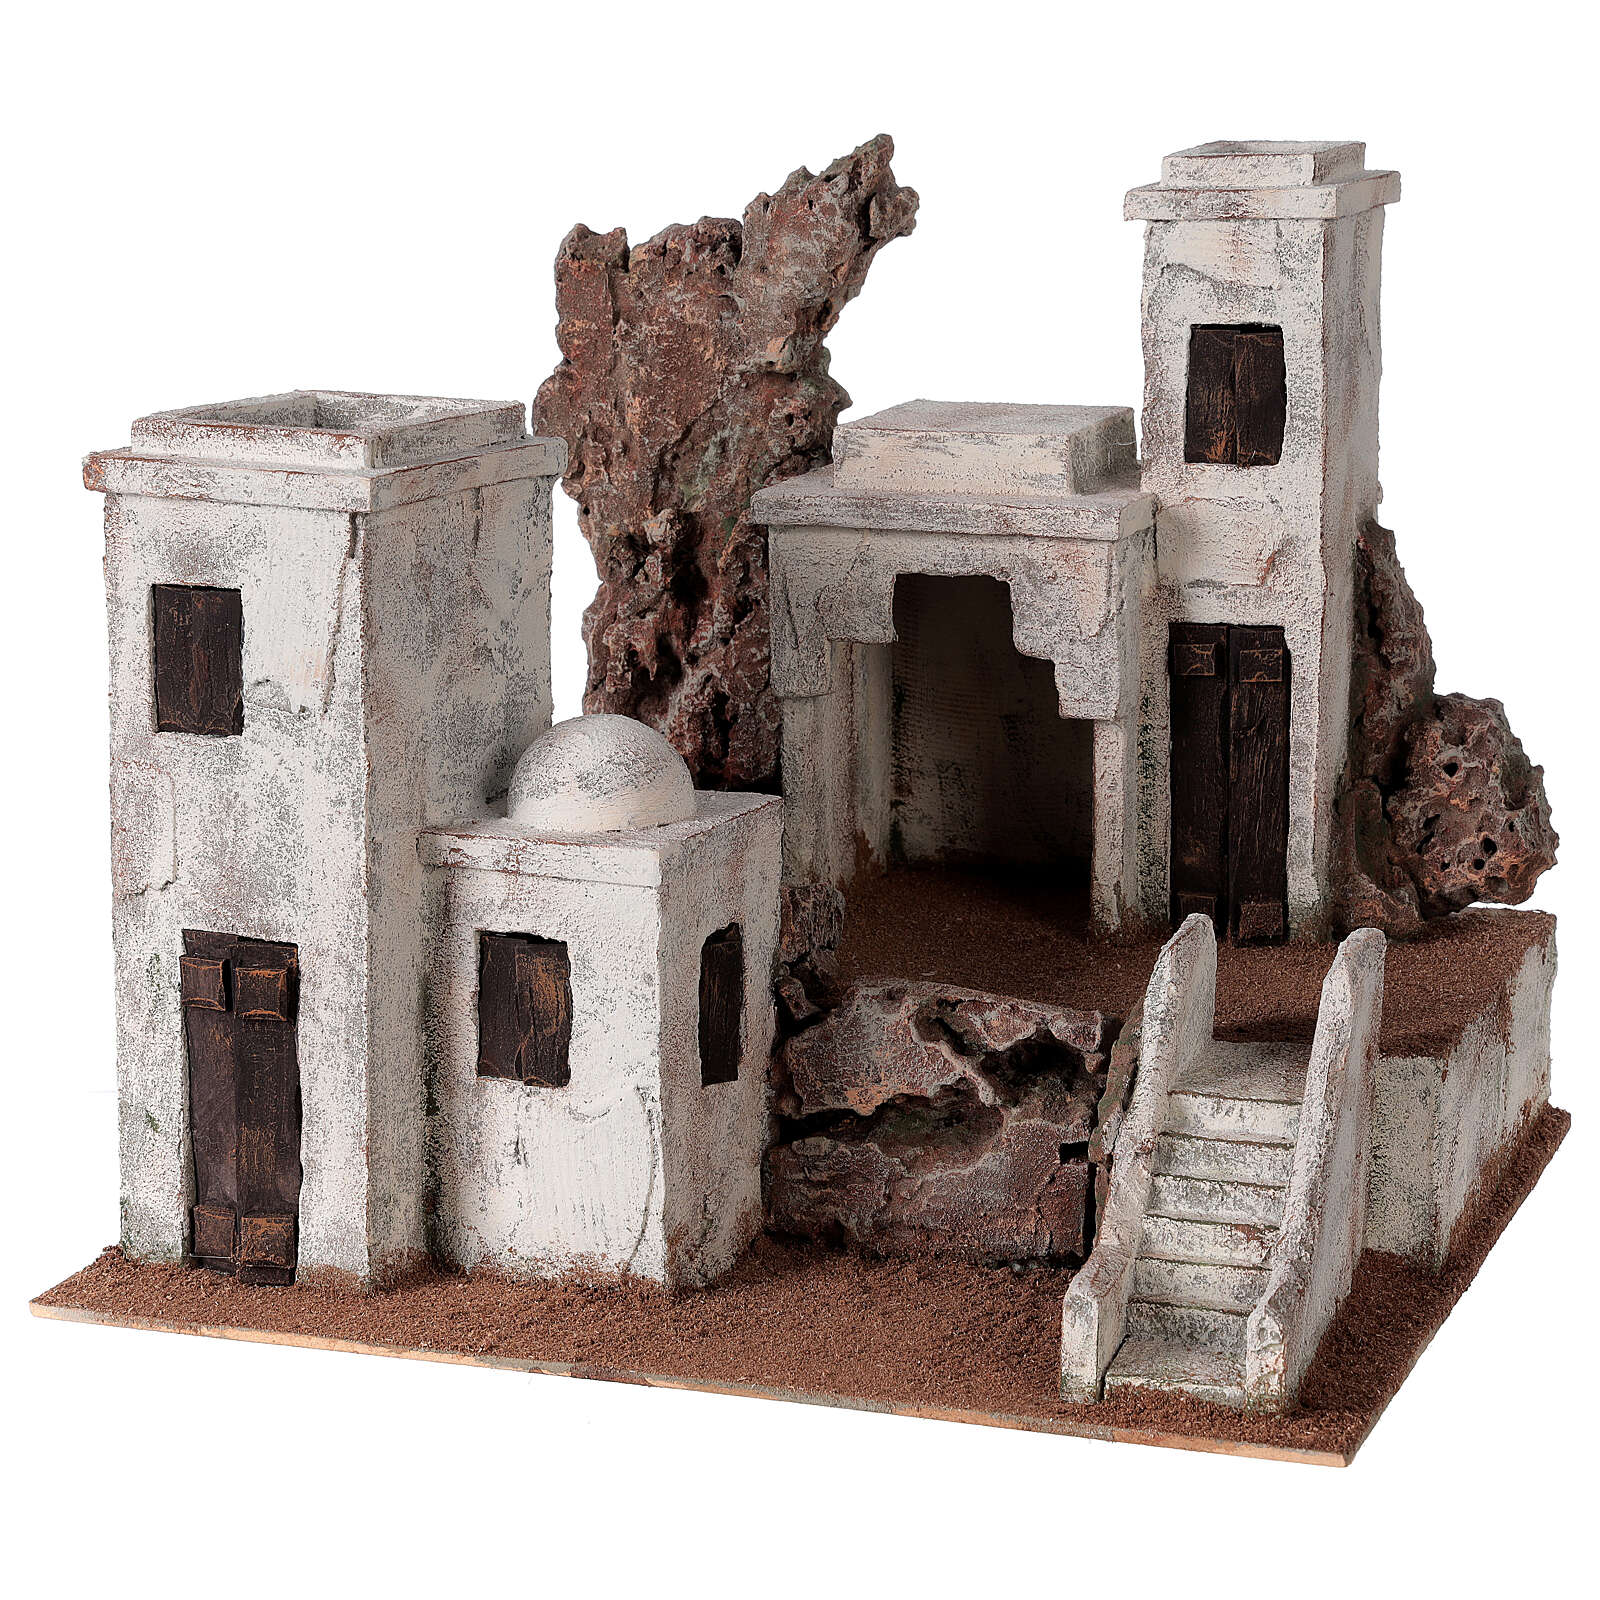 Arab Nativity scene village 34x40x36 cm for statues 10 cm 4